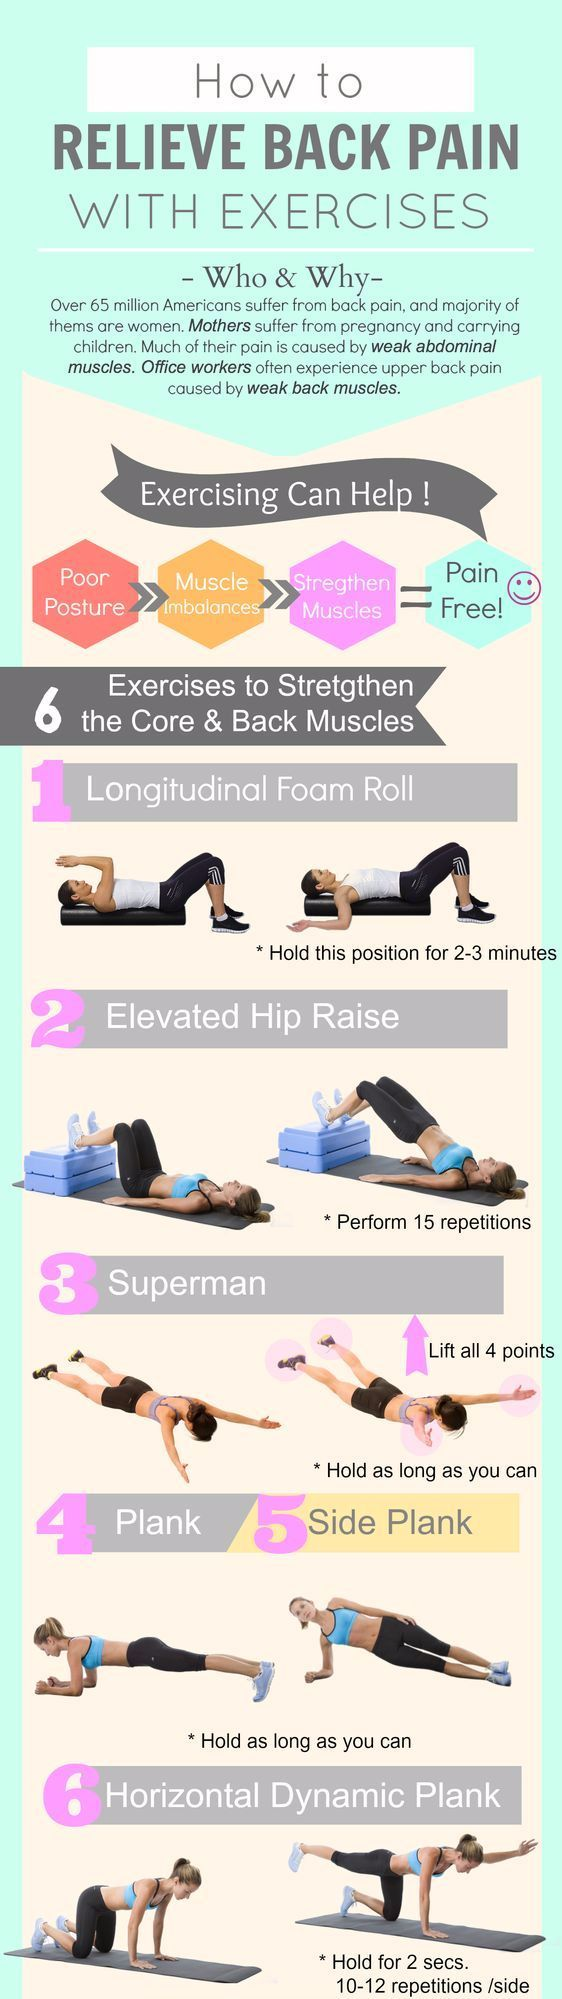 How to relieve back pain with exercises? #backpain